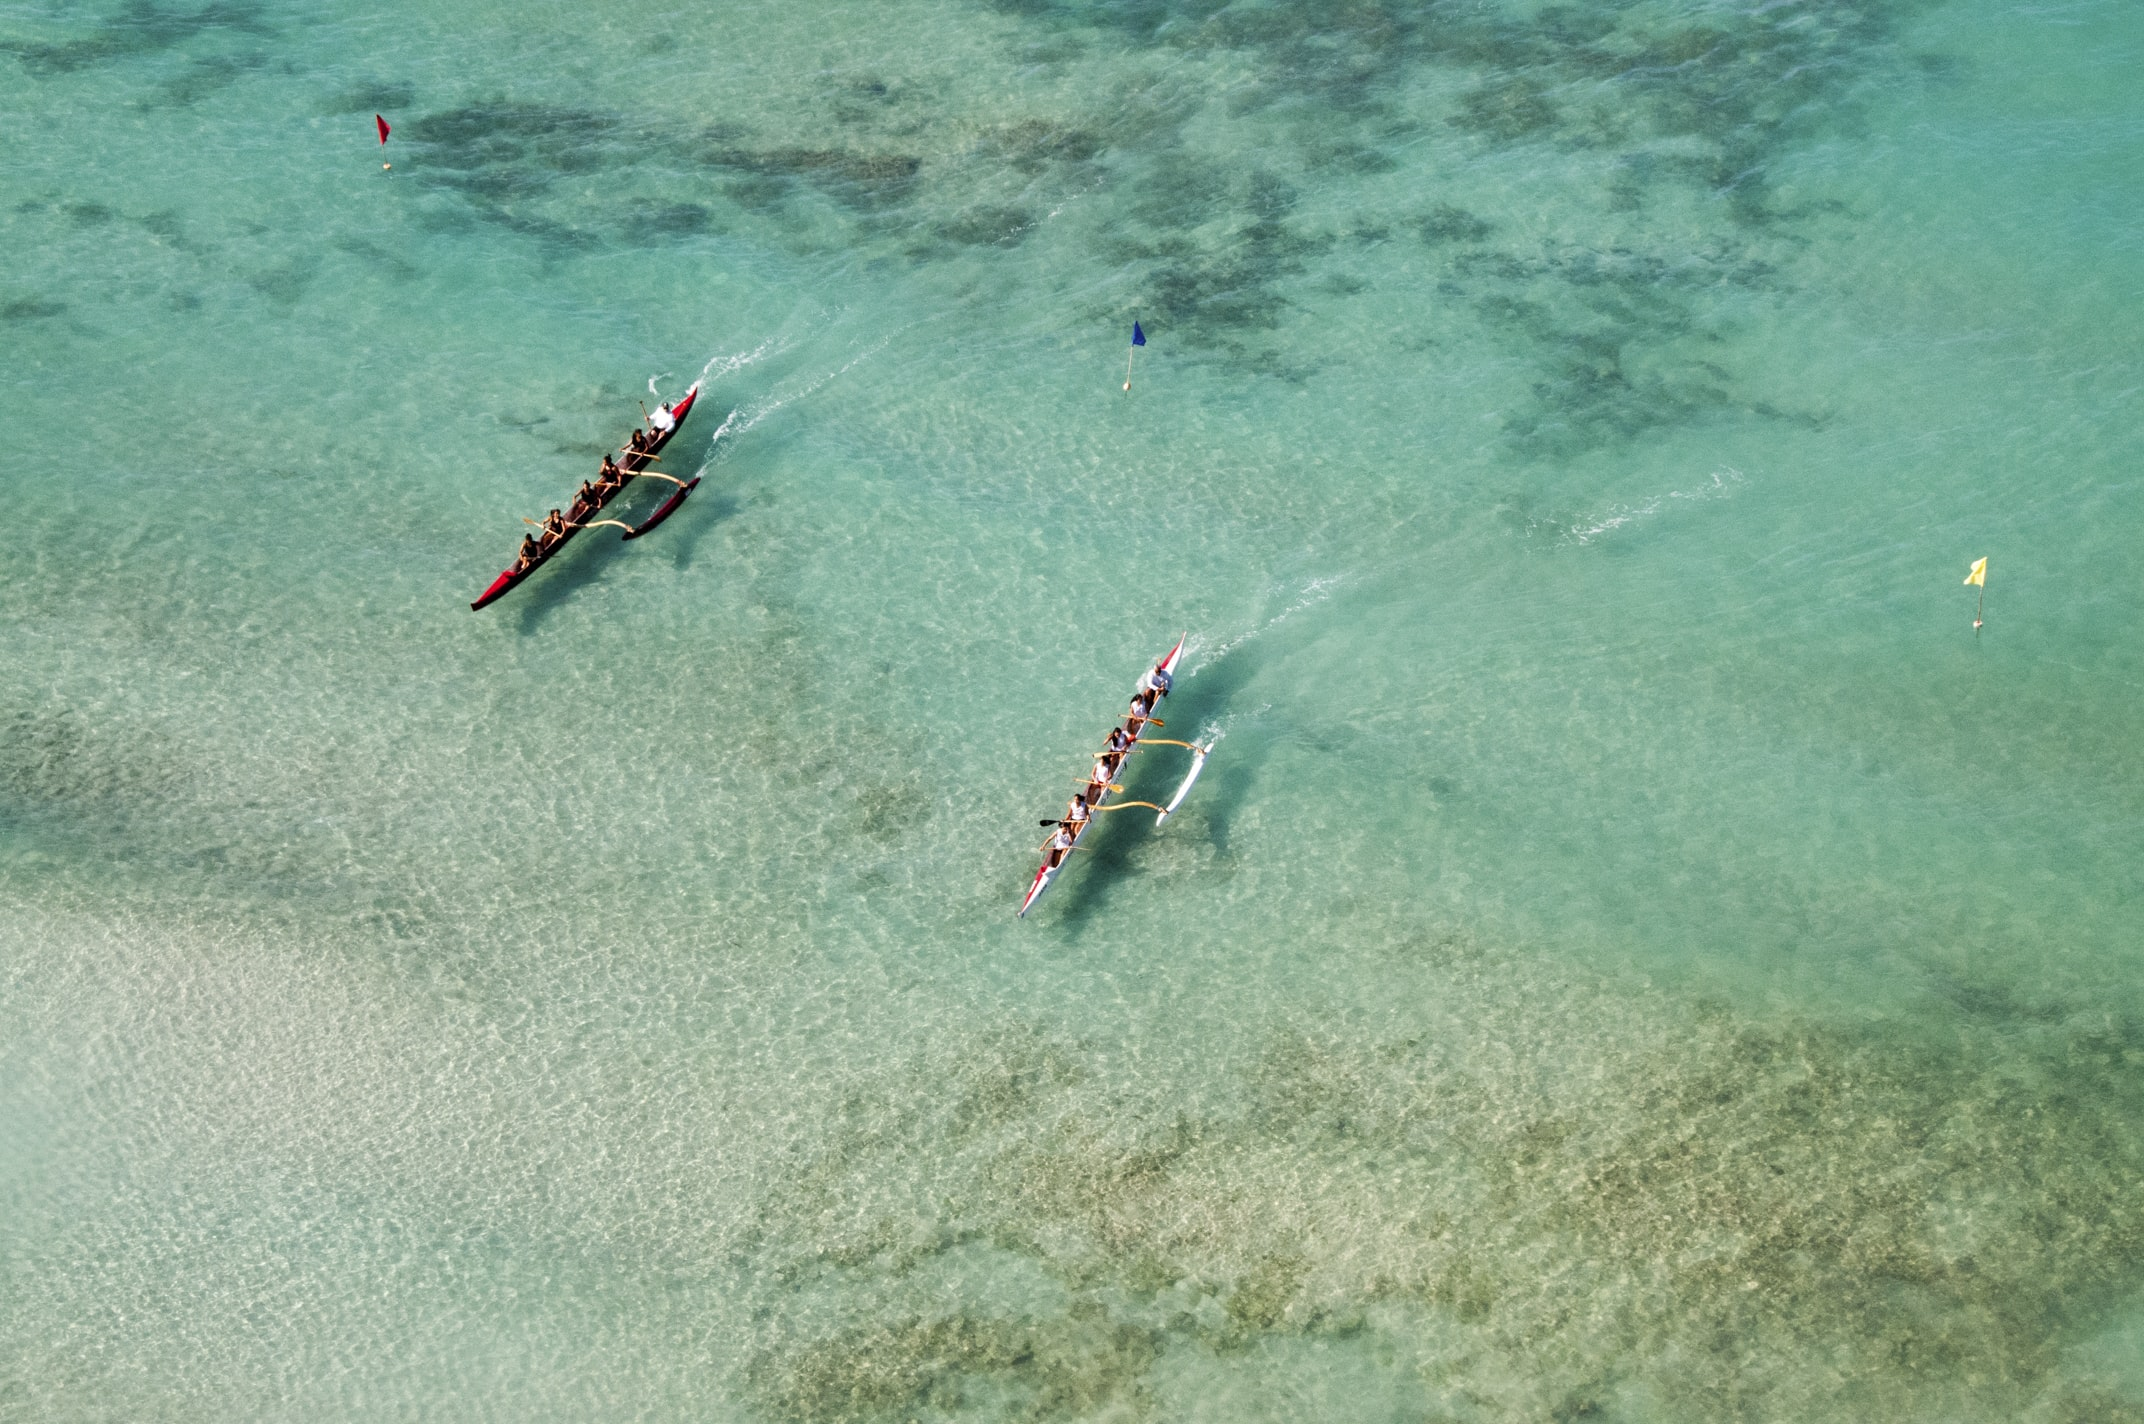 bird's eye view of two boats on body of water